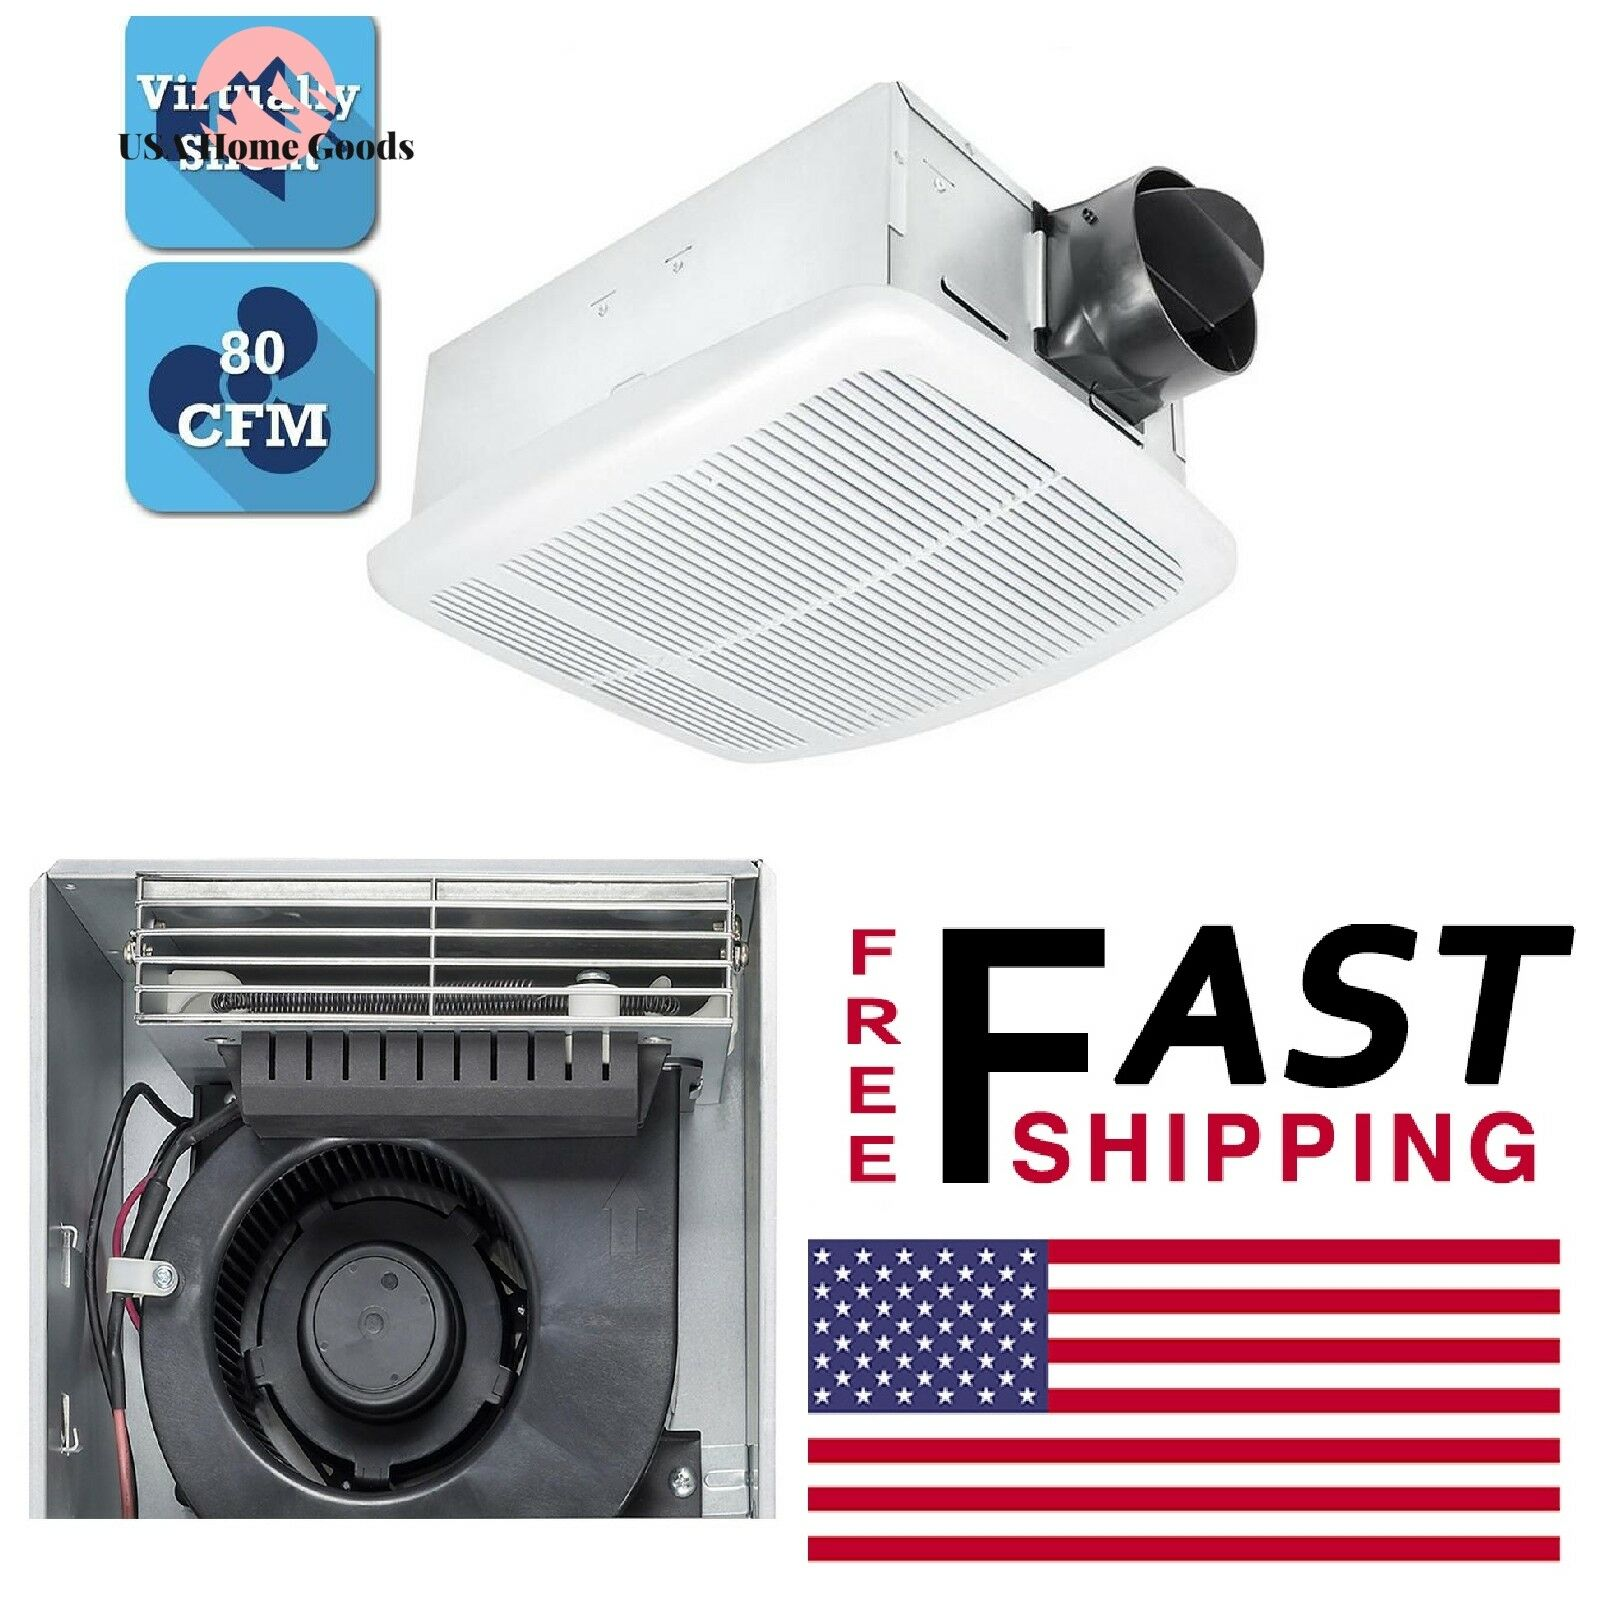 White Square Ceiling Bathroom Exhaust Fan W/ Heater 80 CFM F